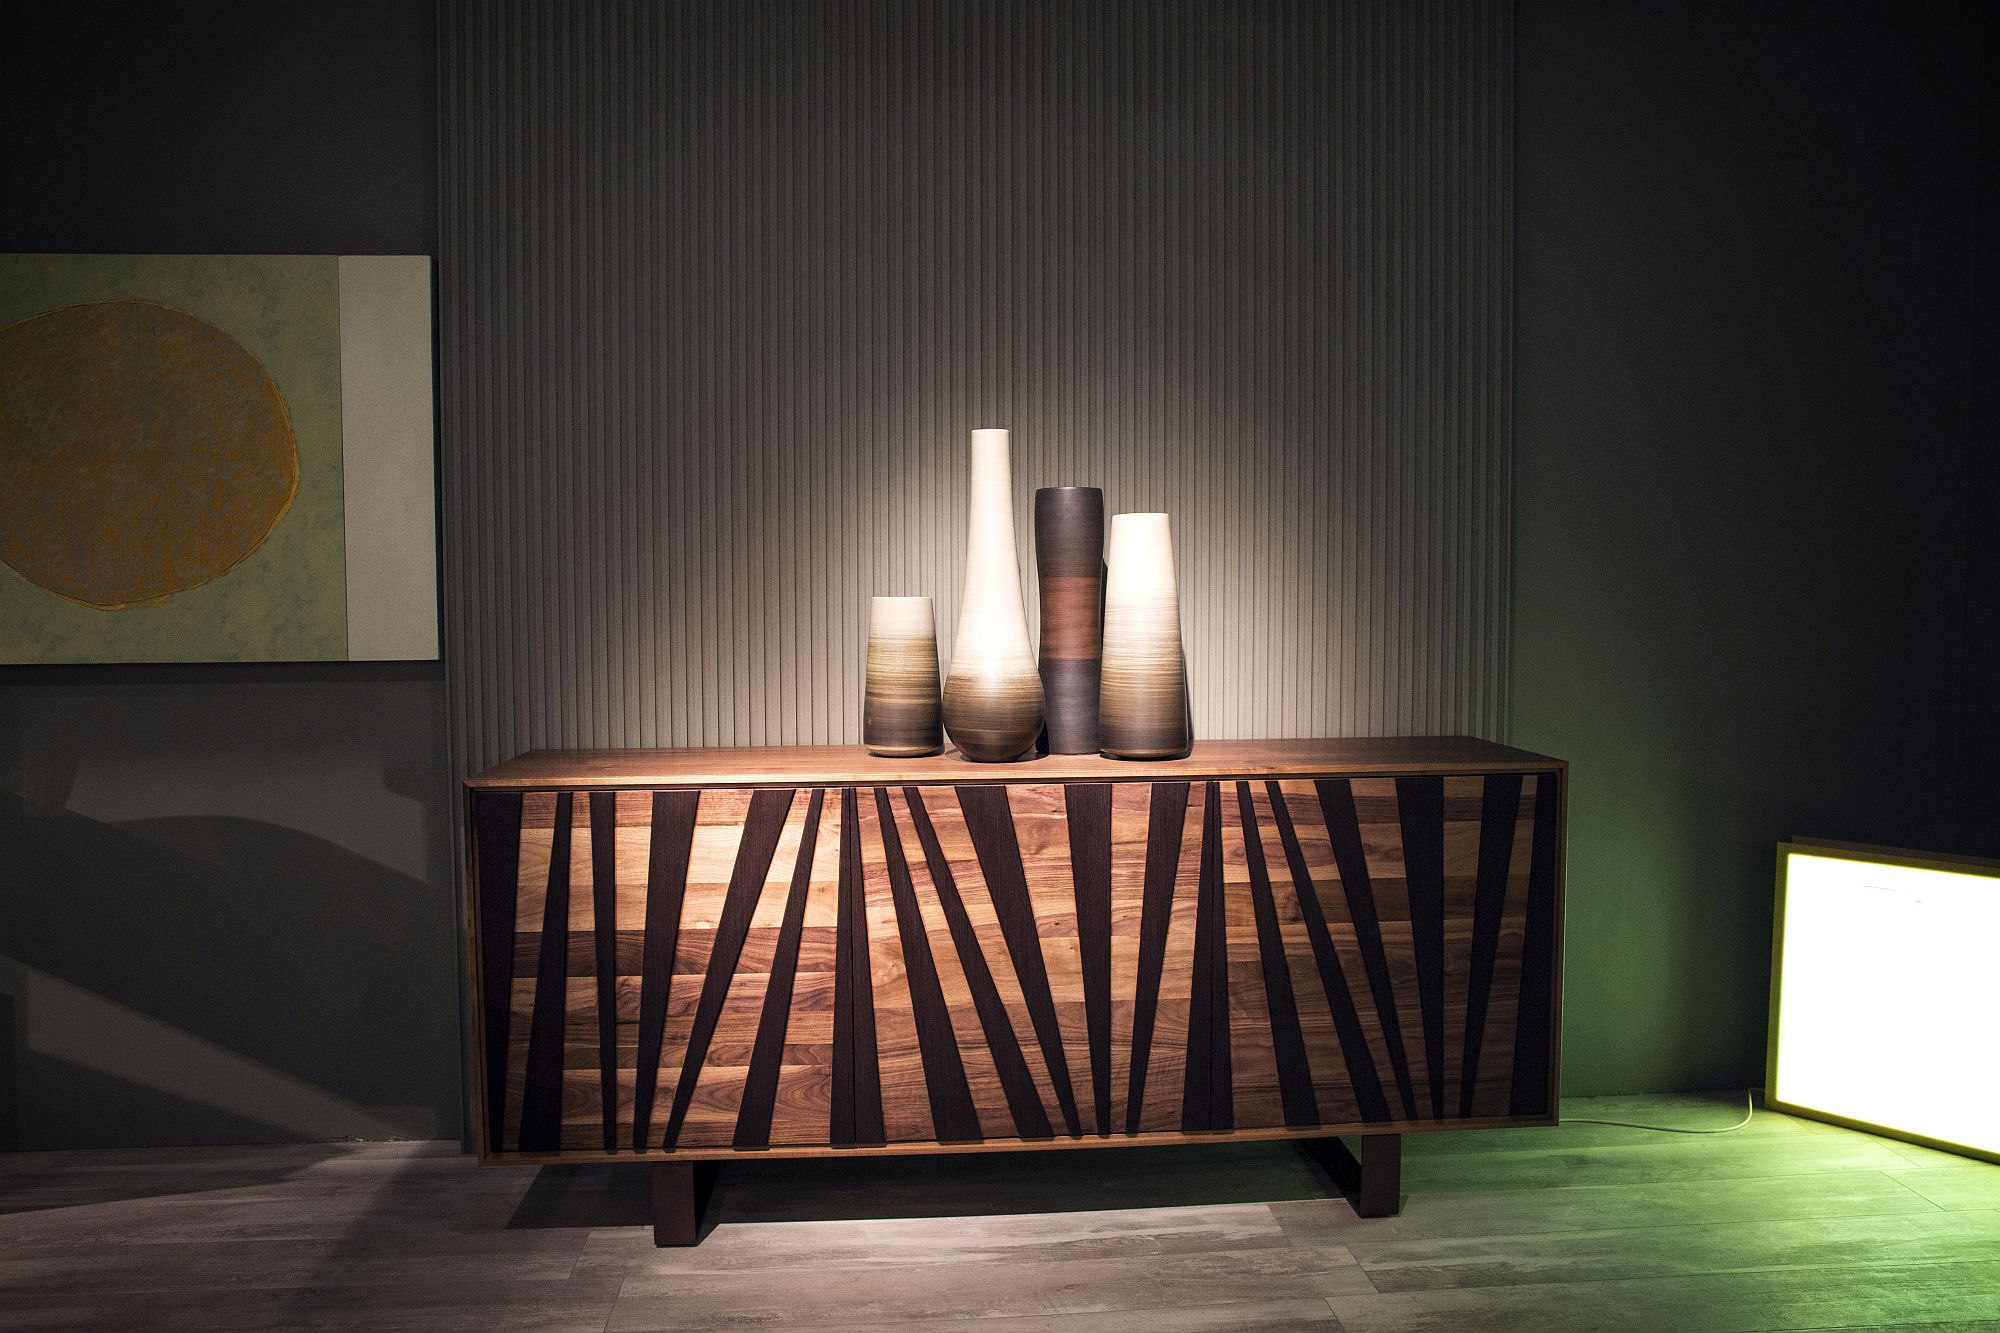 Simple stripes can also help bring intrigue to the sideboard